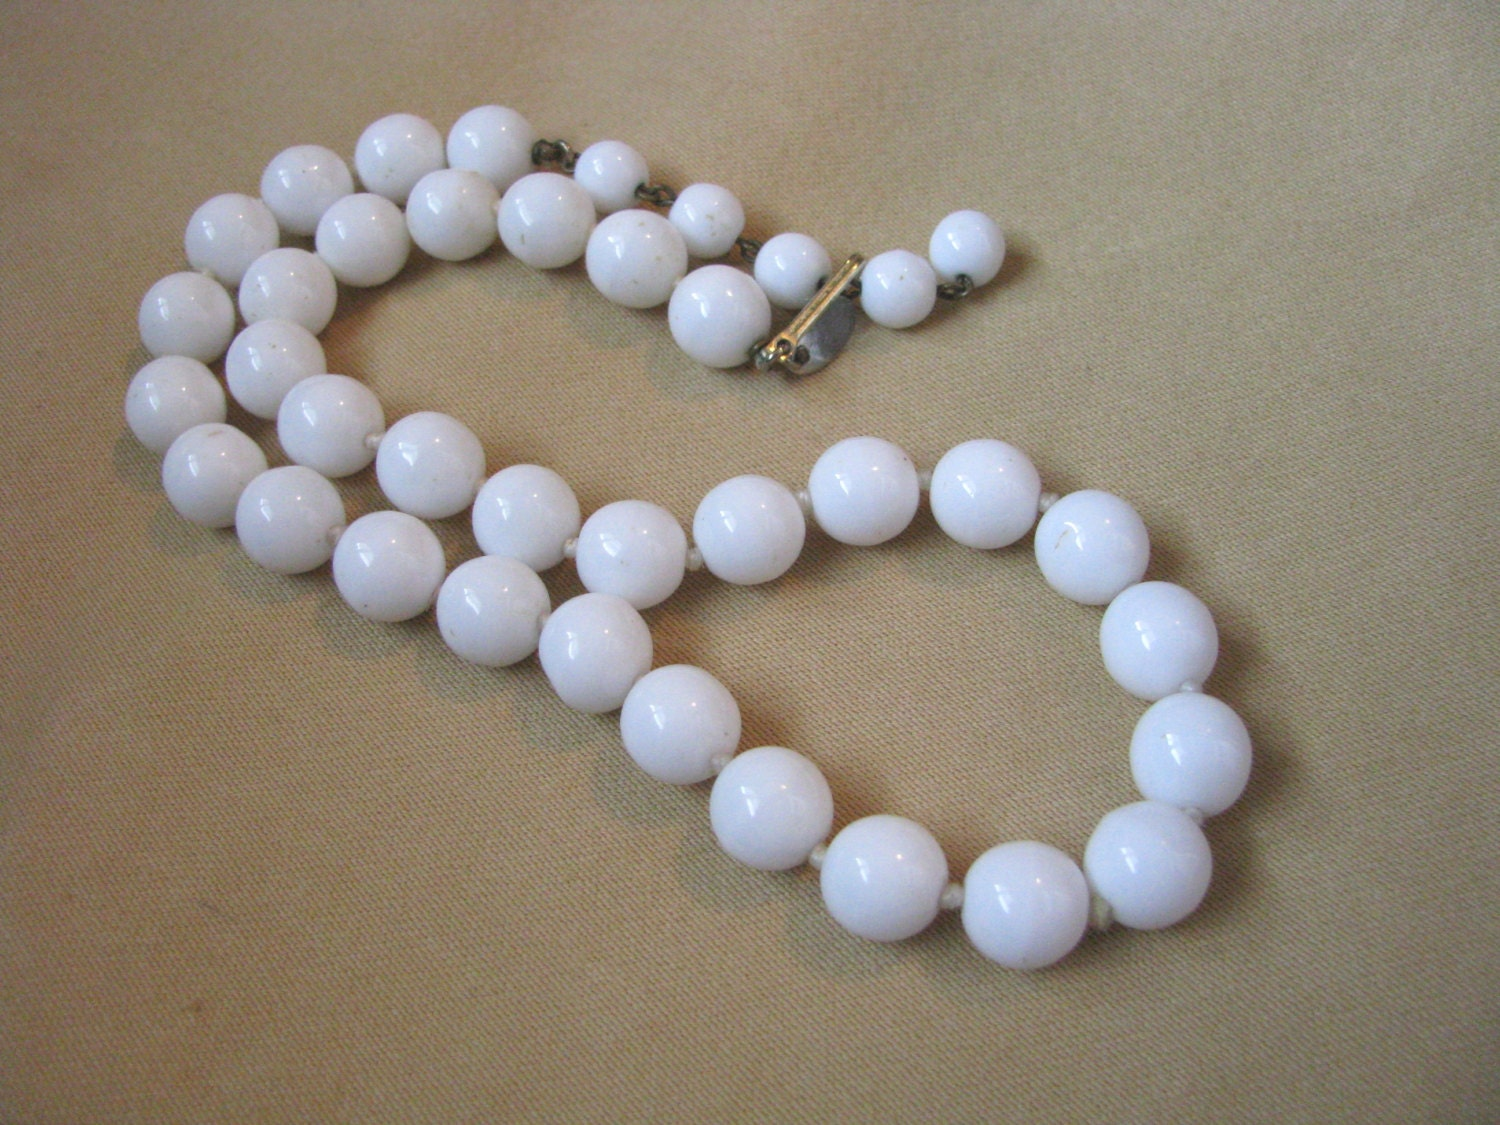 vintage les bernard white glass bead necklace knotted